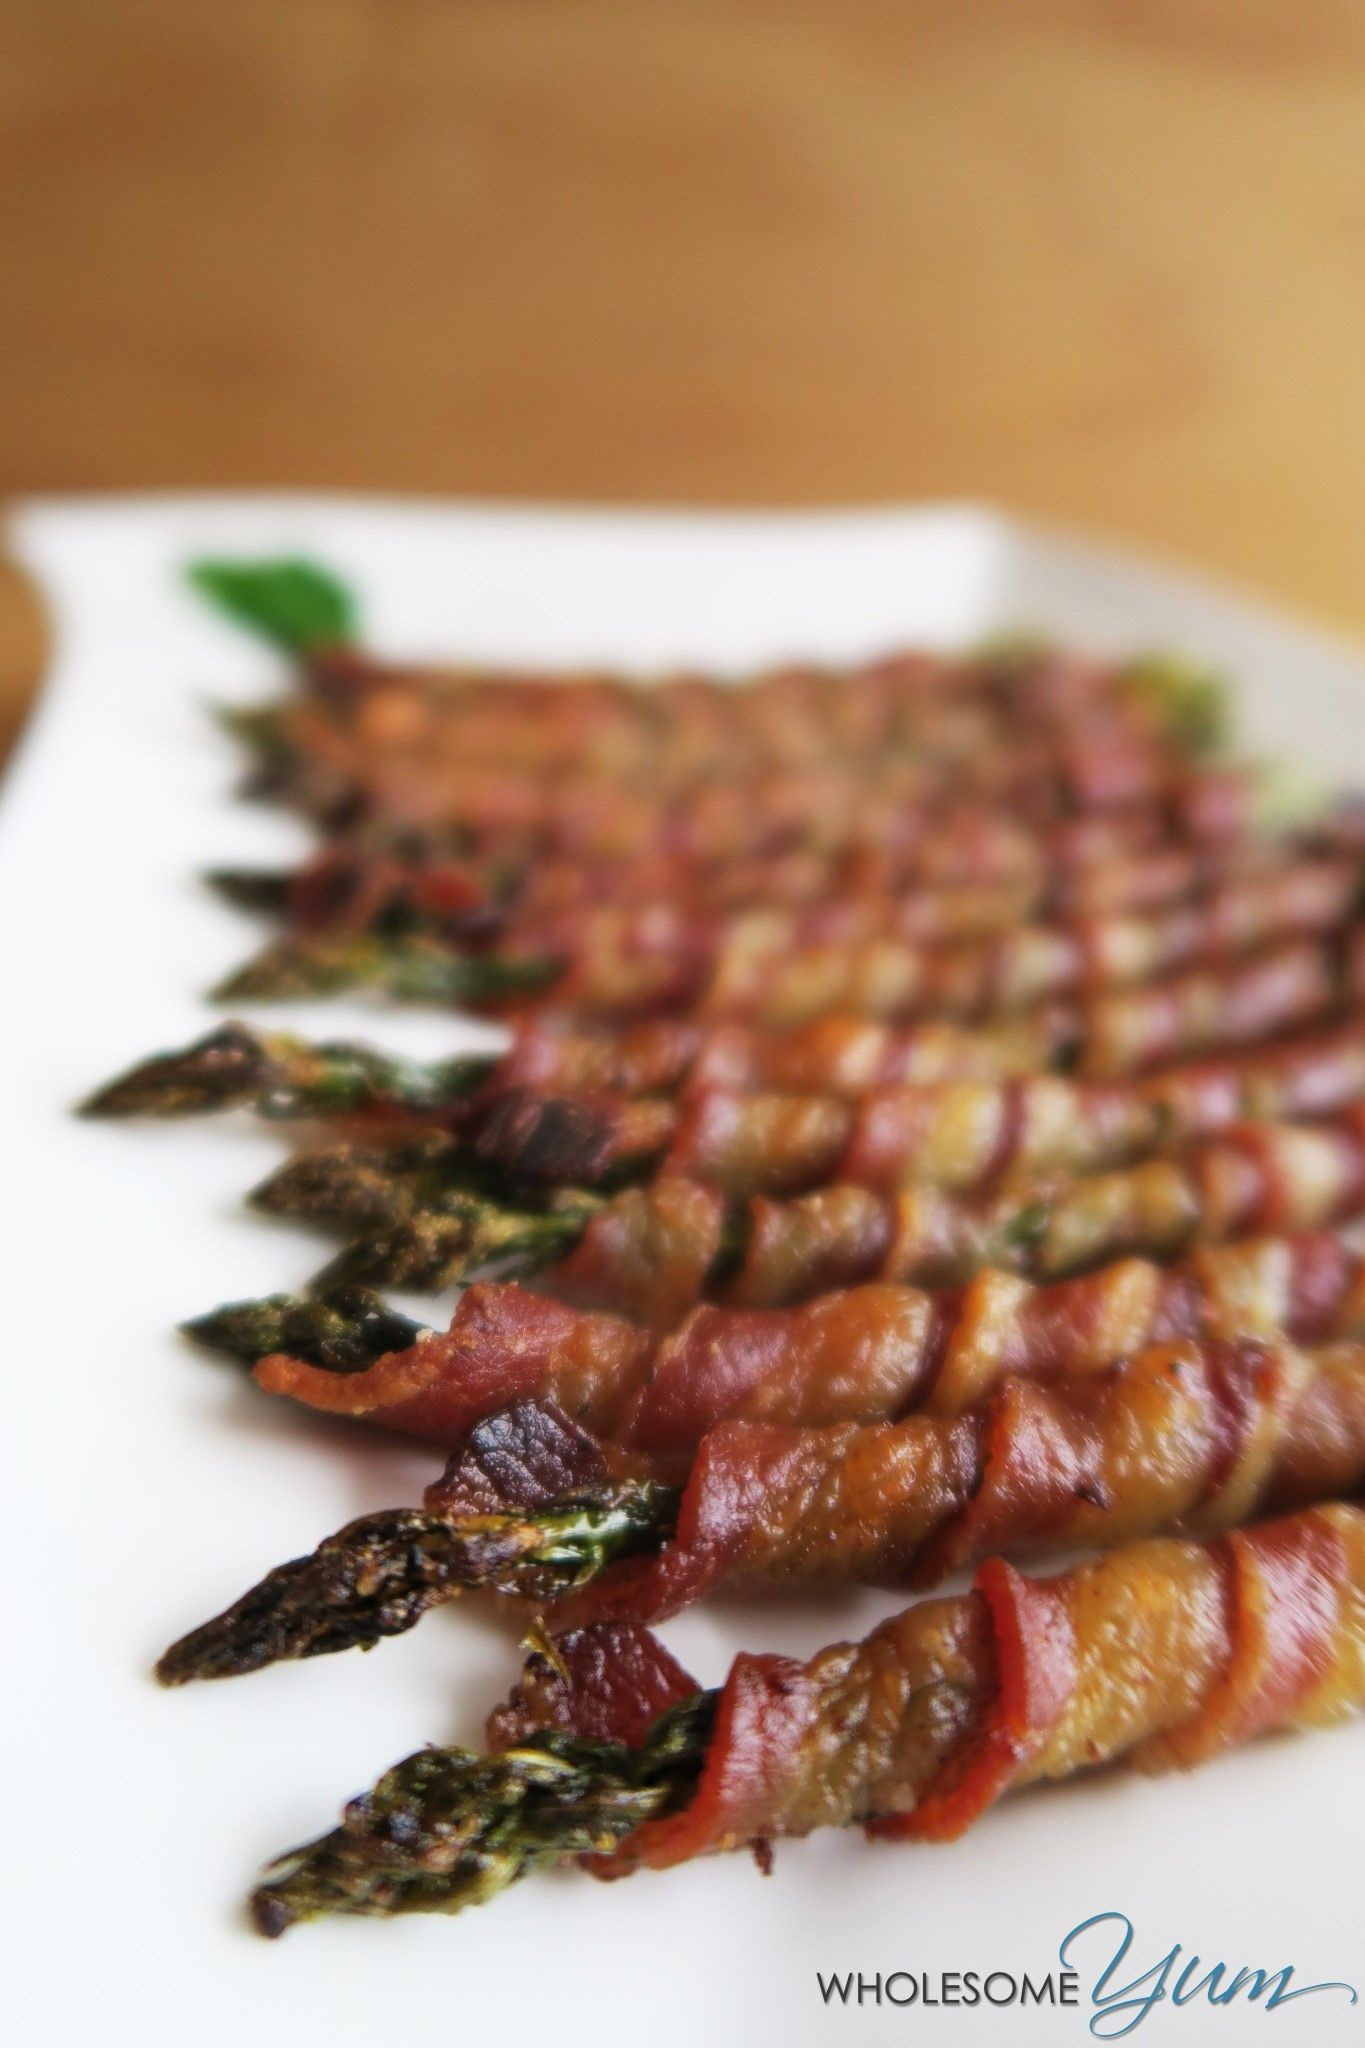 Crispy Bacon Wrapped Asparagus (Paleo, Low Carb) | Wholesome Yum – Natural, gluten-free, low carb recipes